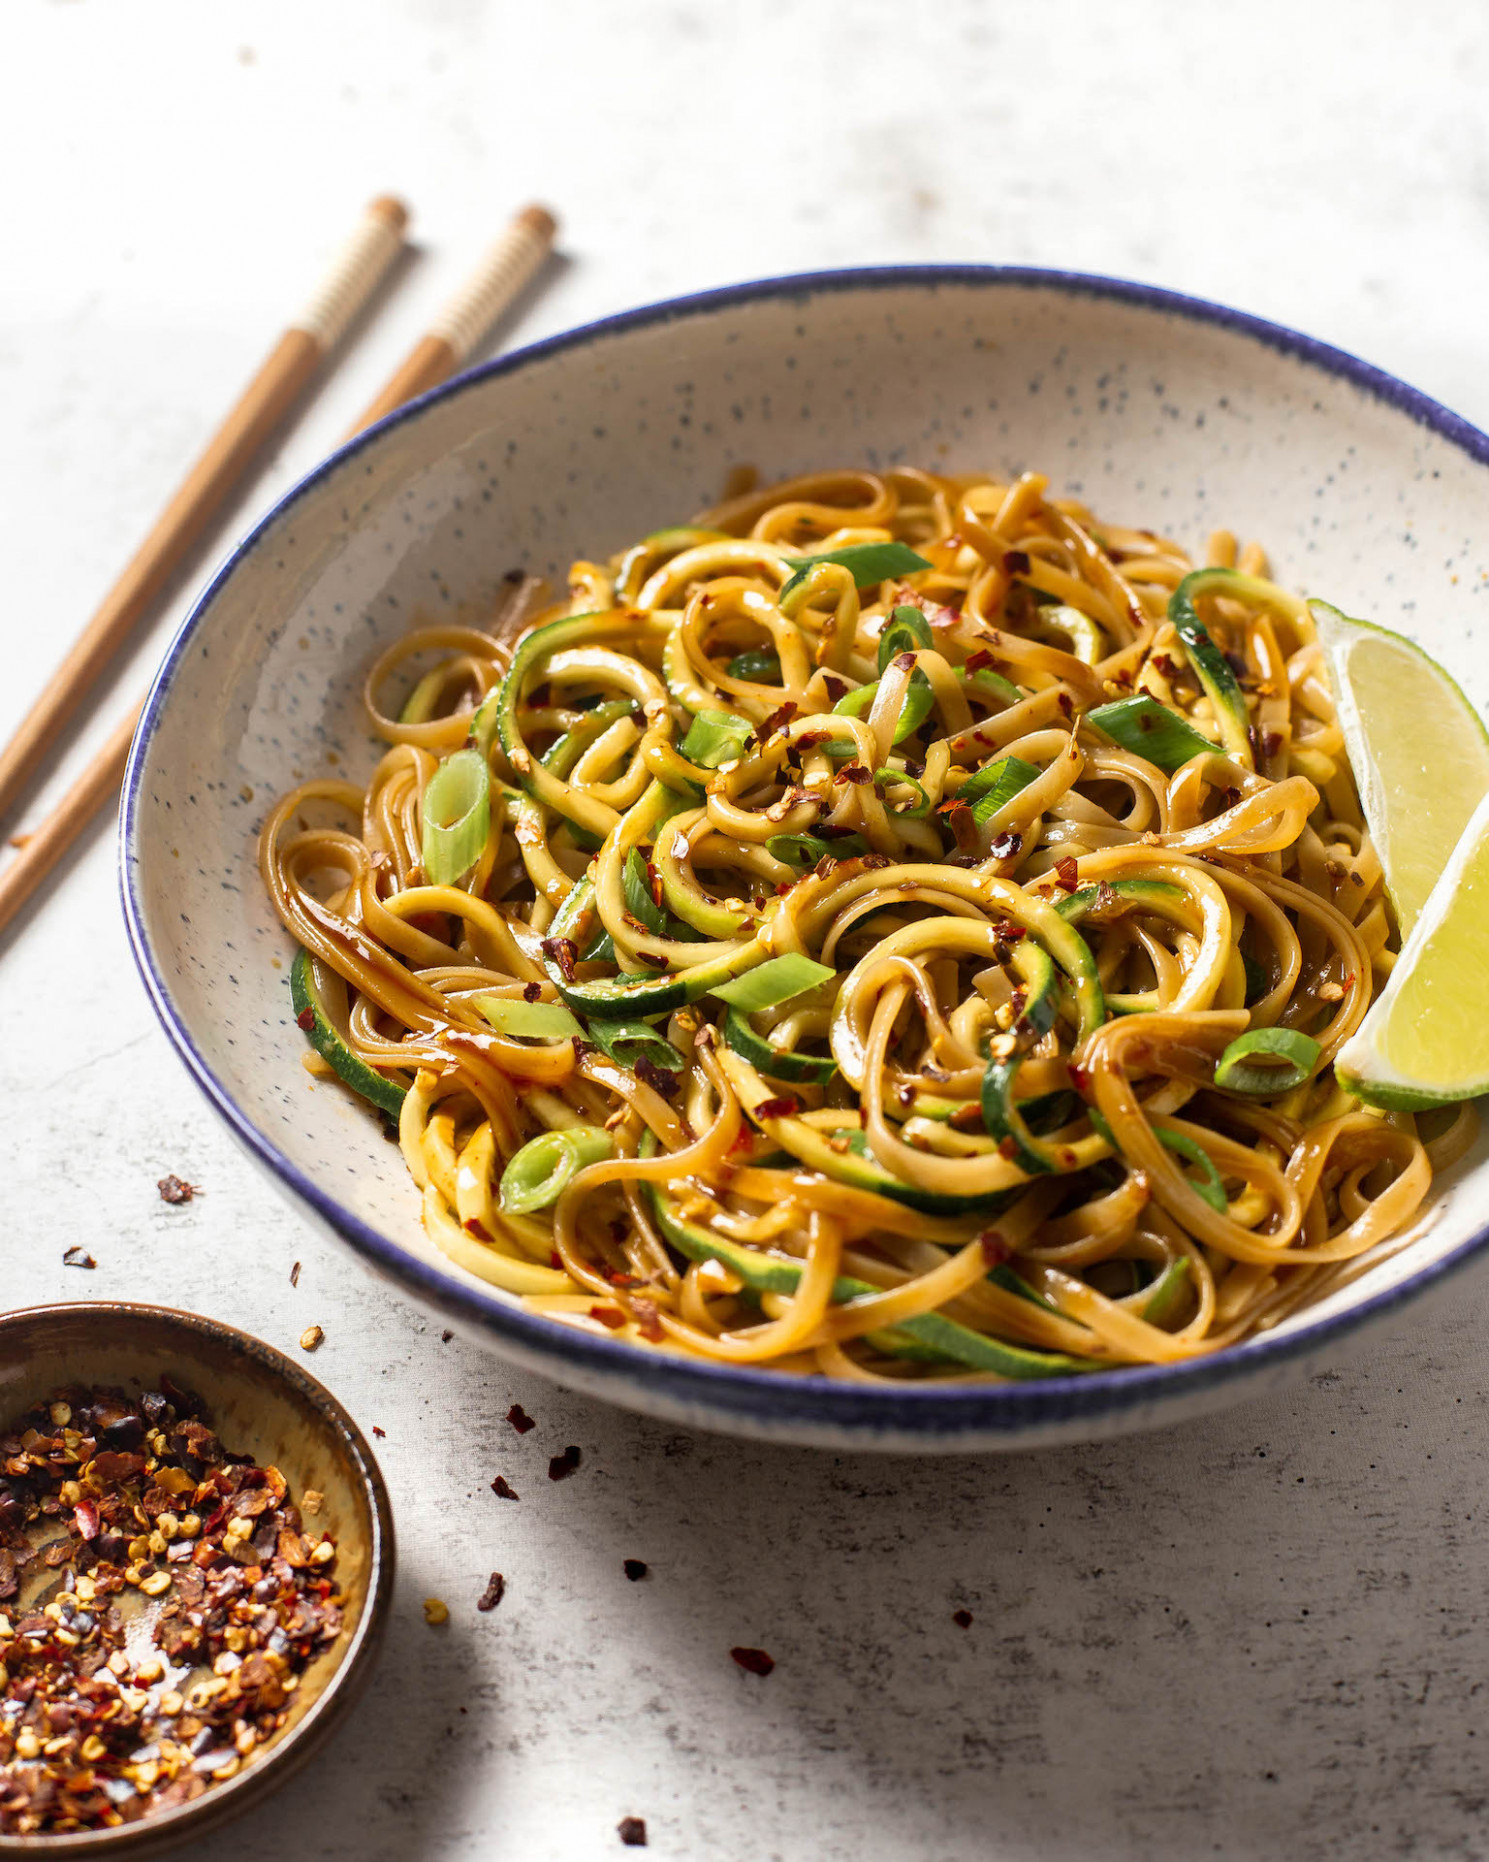 12-Minute Chili Garlic Brown Rice Noodles & Zoodles